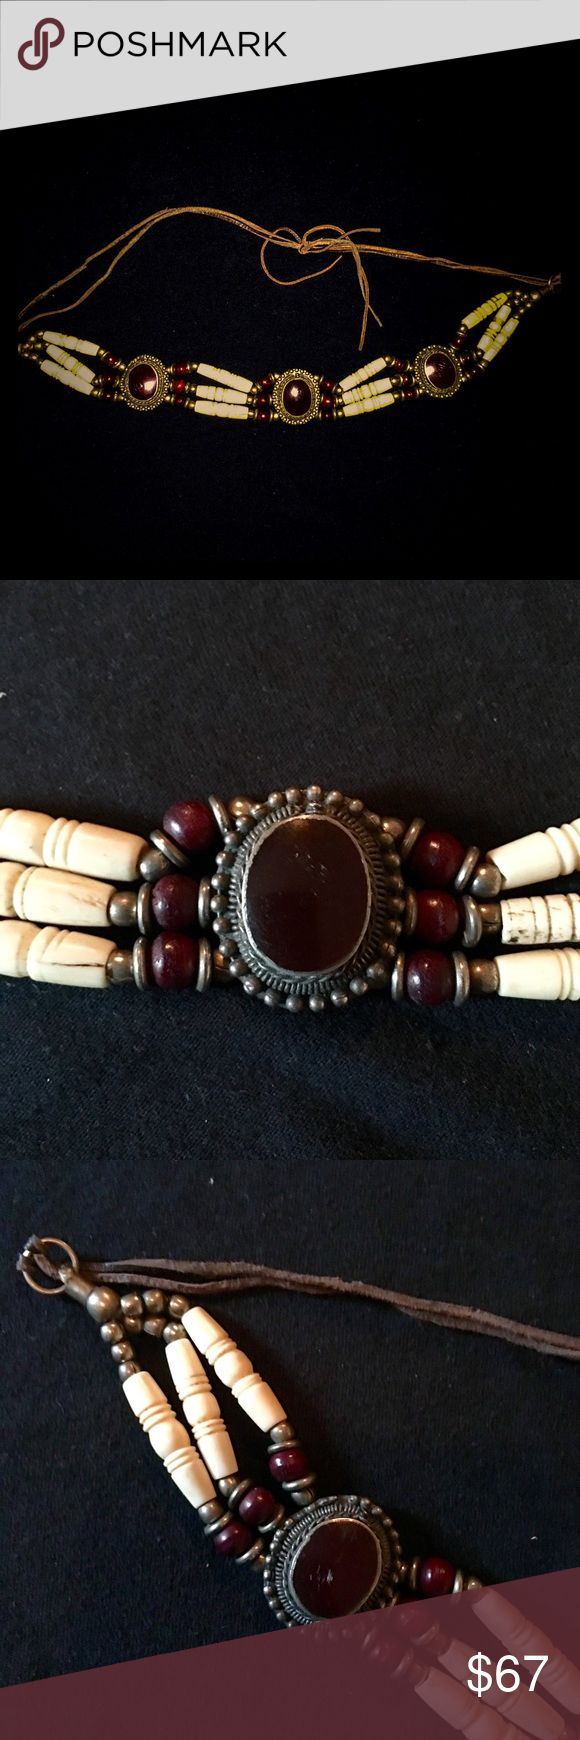 Native American Choker This handmade Native American choker is a must add for that native, boho, hippie look. Silver and burgundy beads, burgundy stones, and bone on leather. Take home this one of a kind piece. Jewelry Necklaces